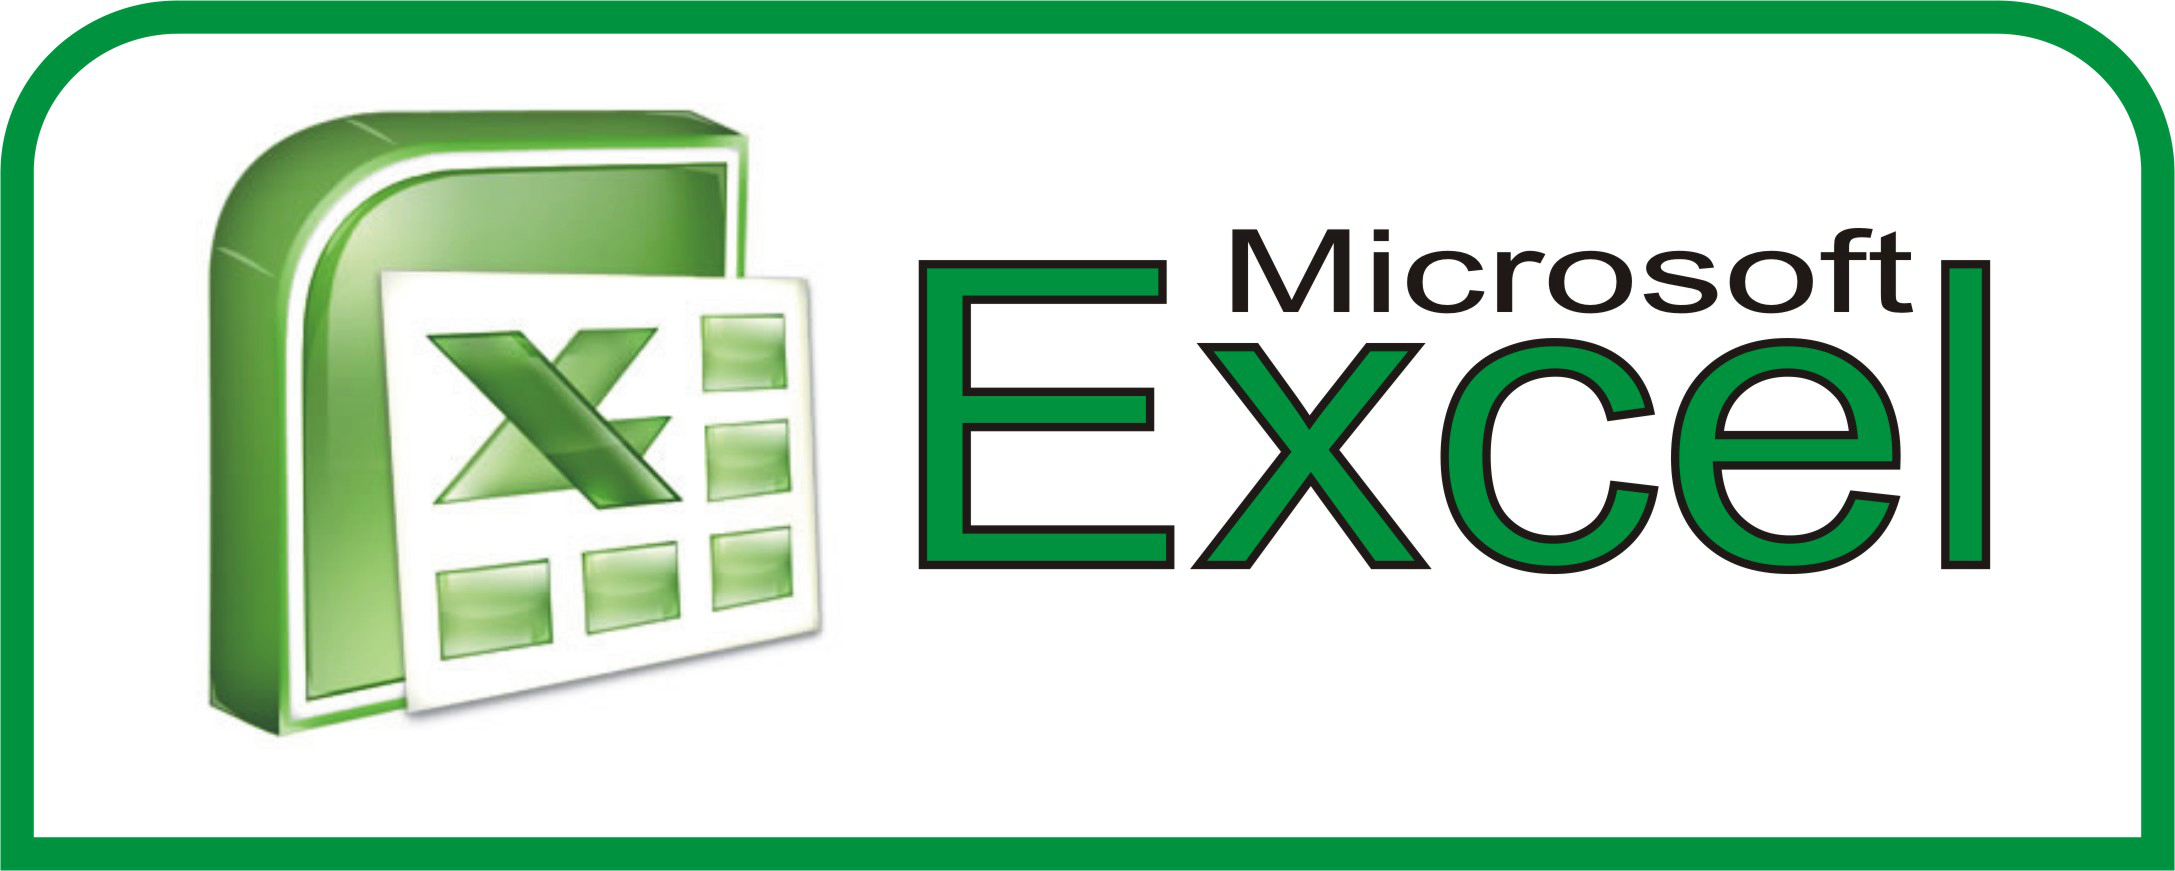 Ediblewildsus  Pleasant  Excel Shortcuts You Probably Didnt Know About  Techdissected With Handsome Ms Excel Lock Cells Besides Typing In Excel Furthermore Excel Macro Error Handling With Beauteous Sum If Function In Excel Also Excel  Test In Addition Excel  Lock Cells And Excel Activeworkbook As Well As Excel Apply Formula To Whole Column Additionally Xml To Excel Online From Techdissectedcom With Ediblewildsus  Handsome  Excel Shortcuts You Probably Didnt Know About  Techdissected With Beauteous Ms Excel Lock Cells Besides Typing In Excel Furthermore Excel Macro Error Handling And Pleasant Sum If Function In Excel Also Excel  Test In Addition Excel  Lock Cells From Techdissectedcom